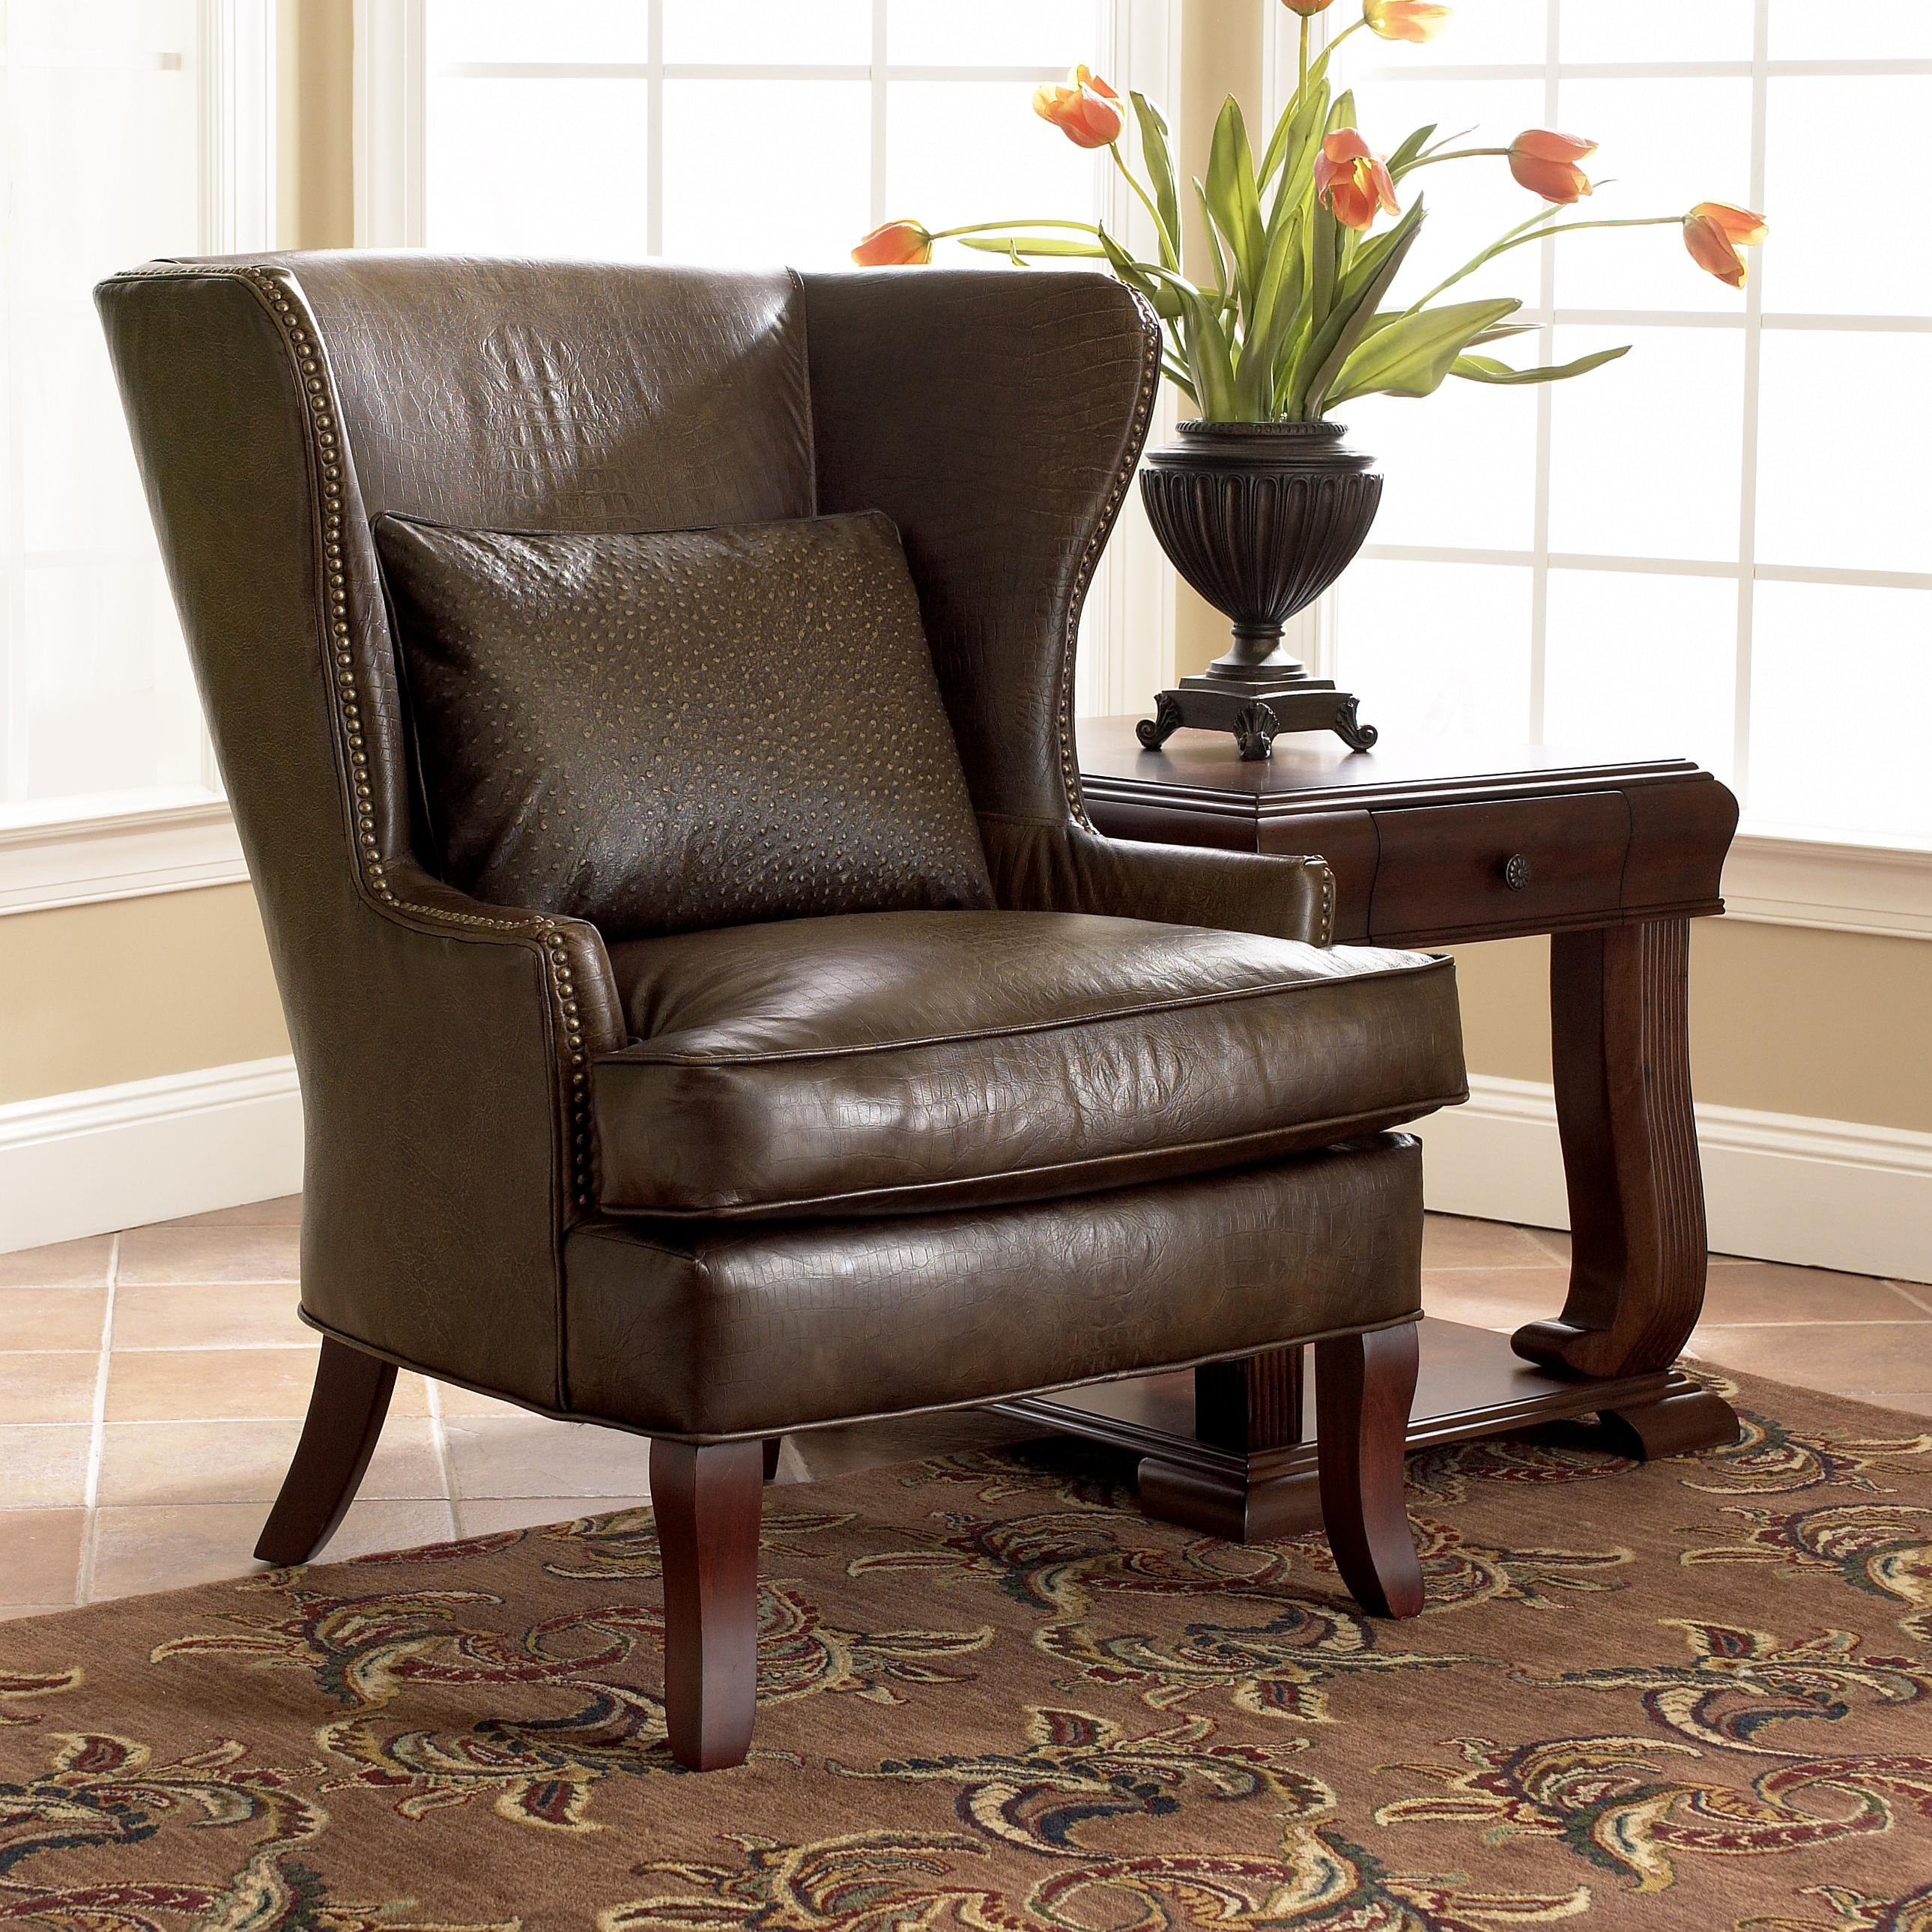 Chairs And Accents (Leather )Klaussner – Pilgrim Furniture City Intended For Devon Ii Swivel Accent Chairs (View 22 of 25)